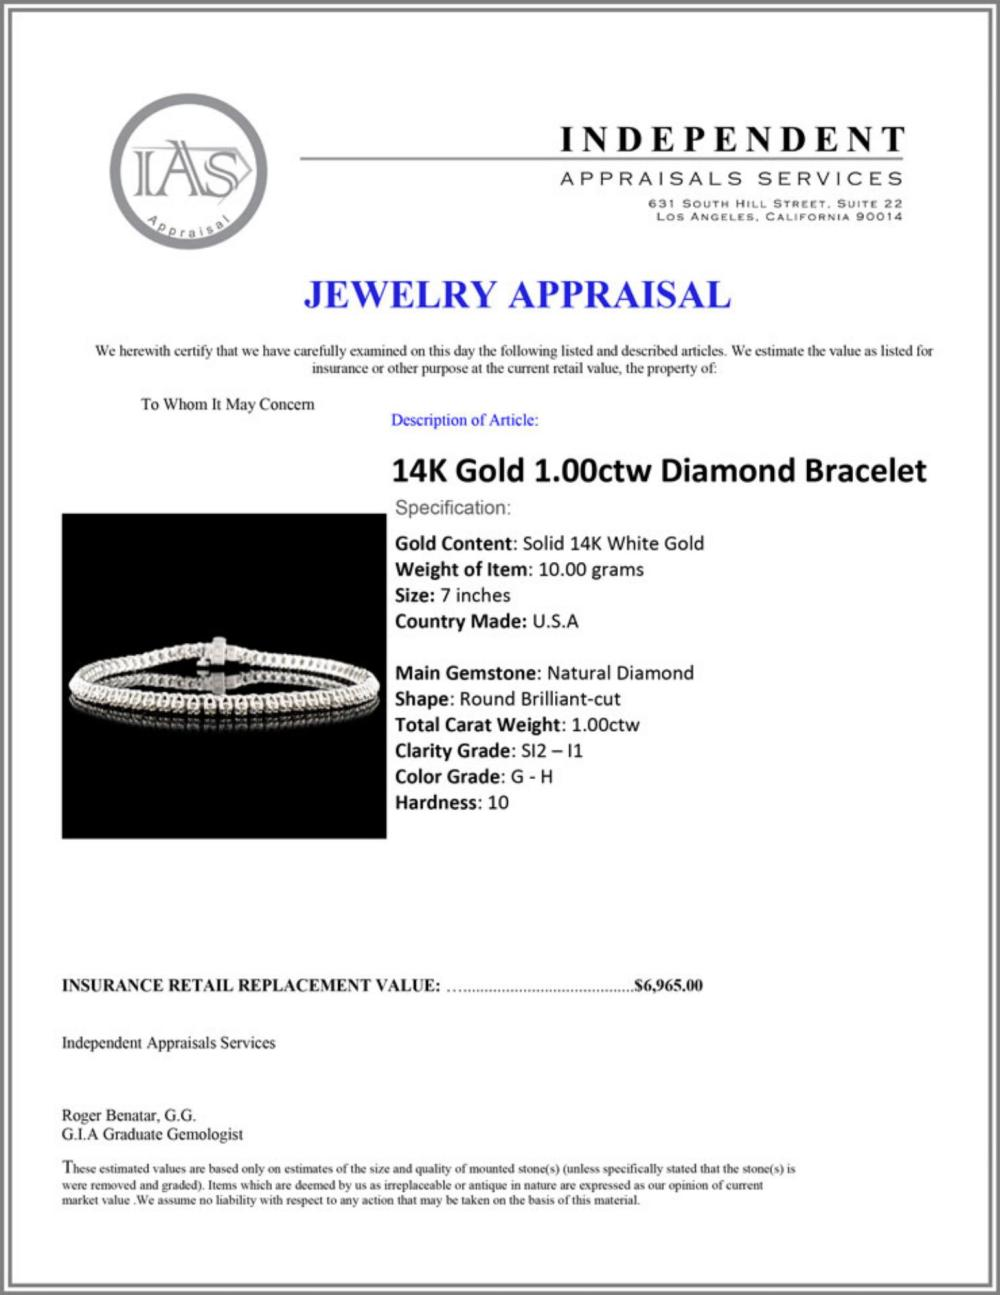 Lot 170: 14K Gold 1.00ctw Diamond Bracelet